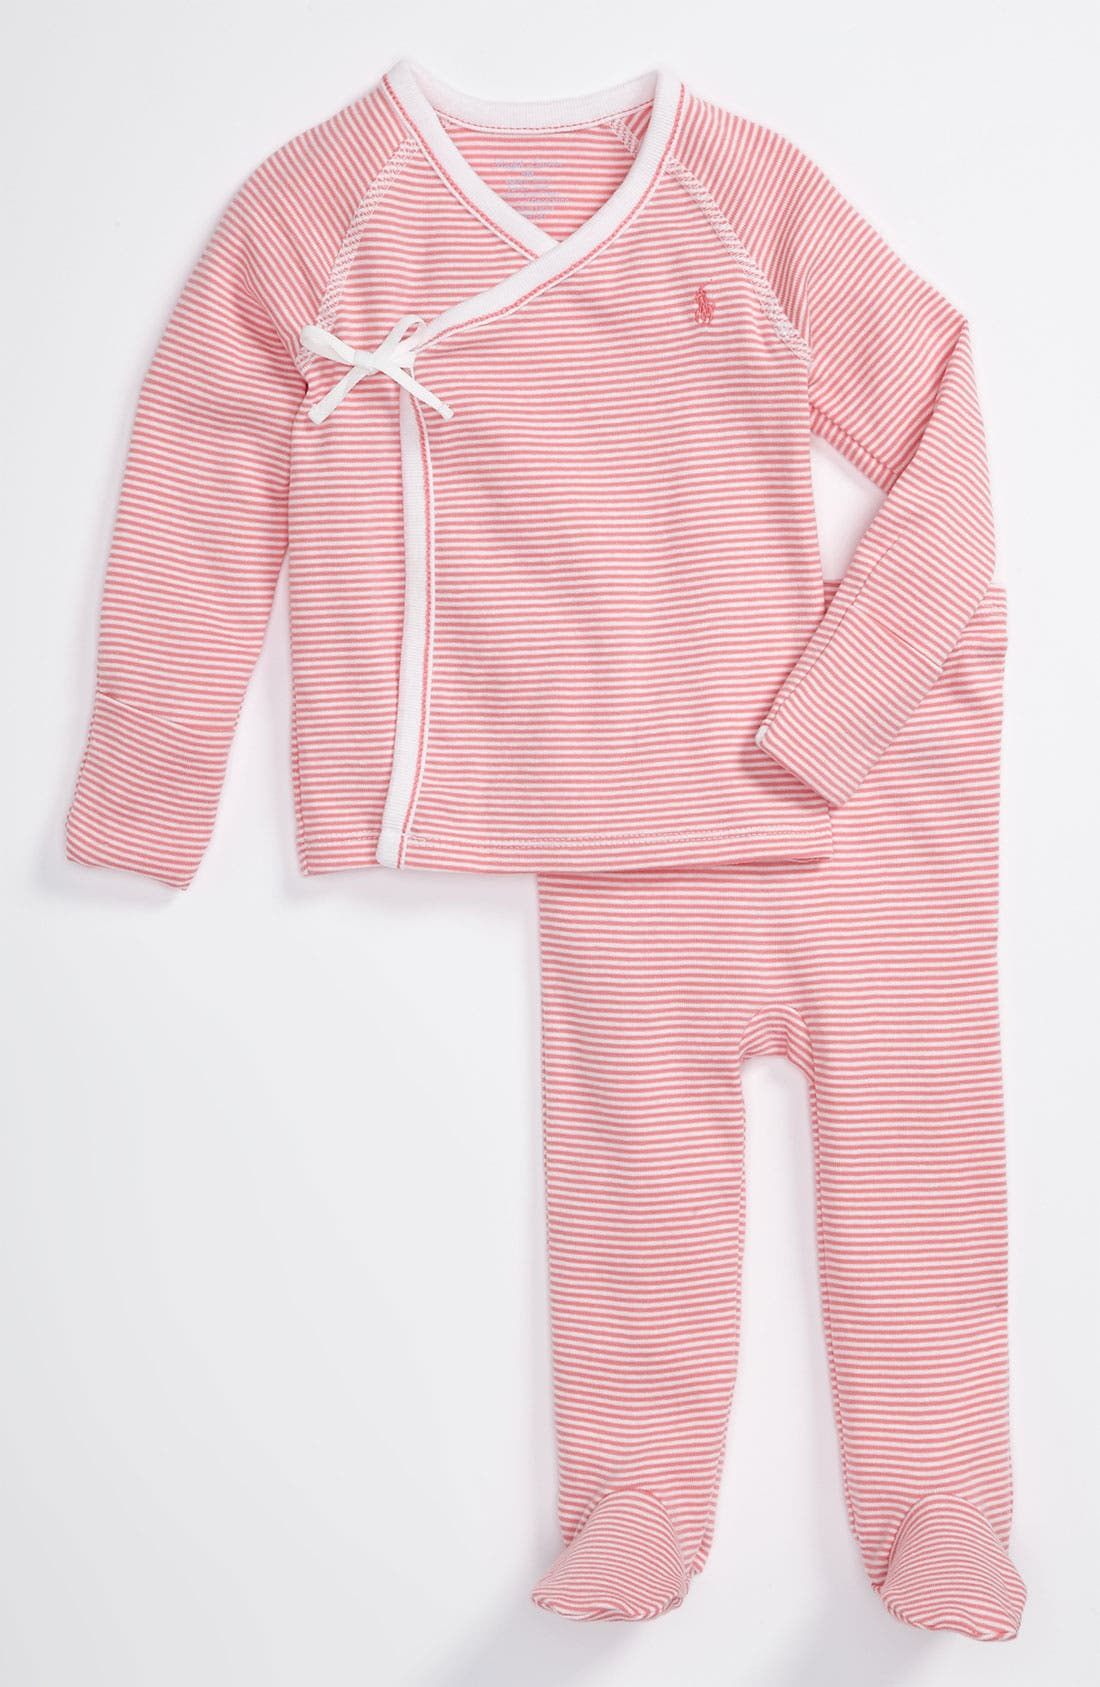 Alternate Image 1 Selected - Ralph Lauren Stripe Top & Footed Pants Set (Baby)